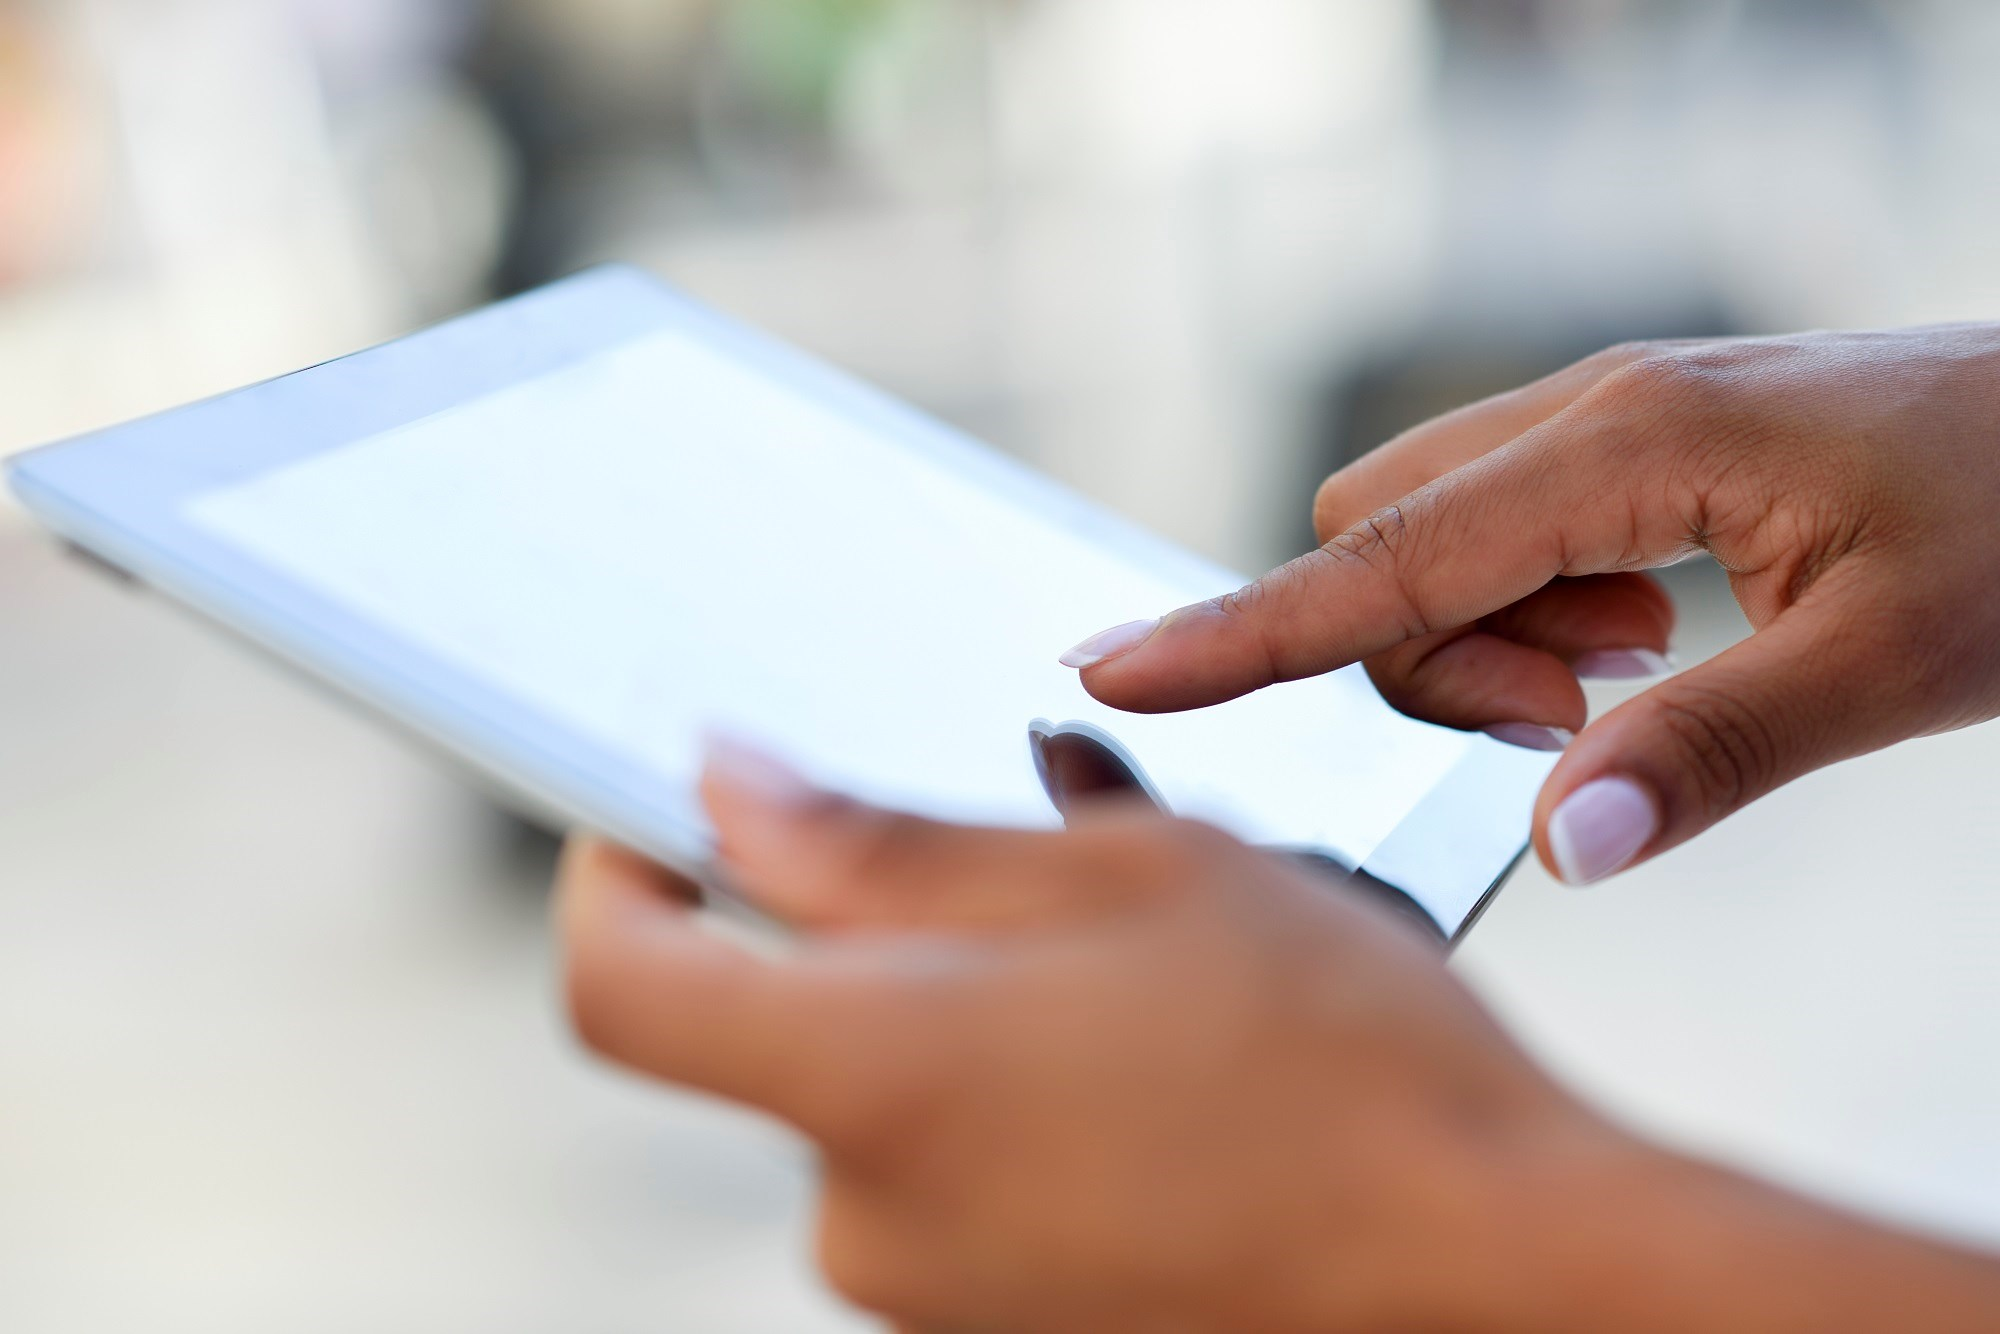 Cognitive impairment in patients with multiple sclerosis was assessed using 3 CANTAB neuropsychological tests on a touchscreen tablet computer.